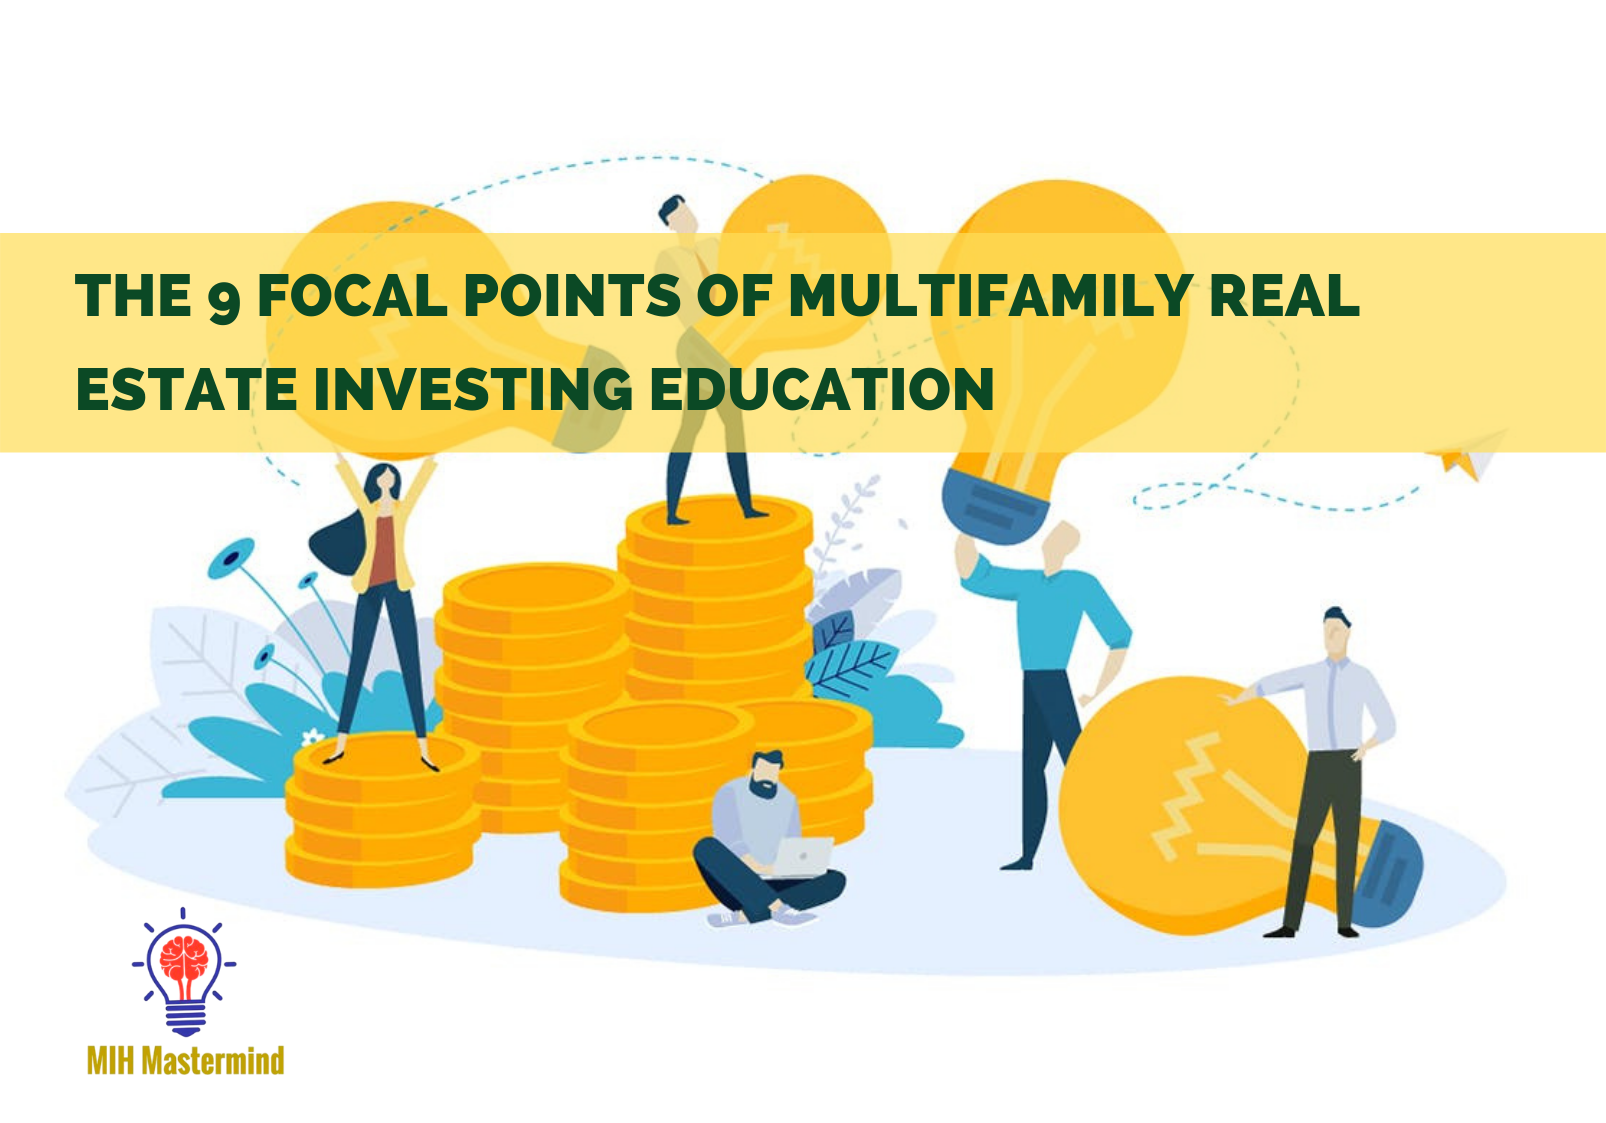 Multifamily Real Estate Investing Education